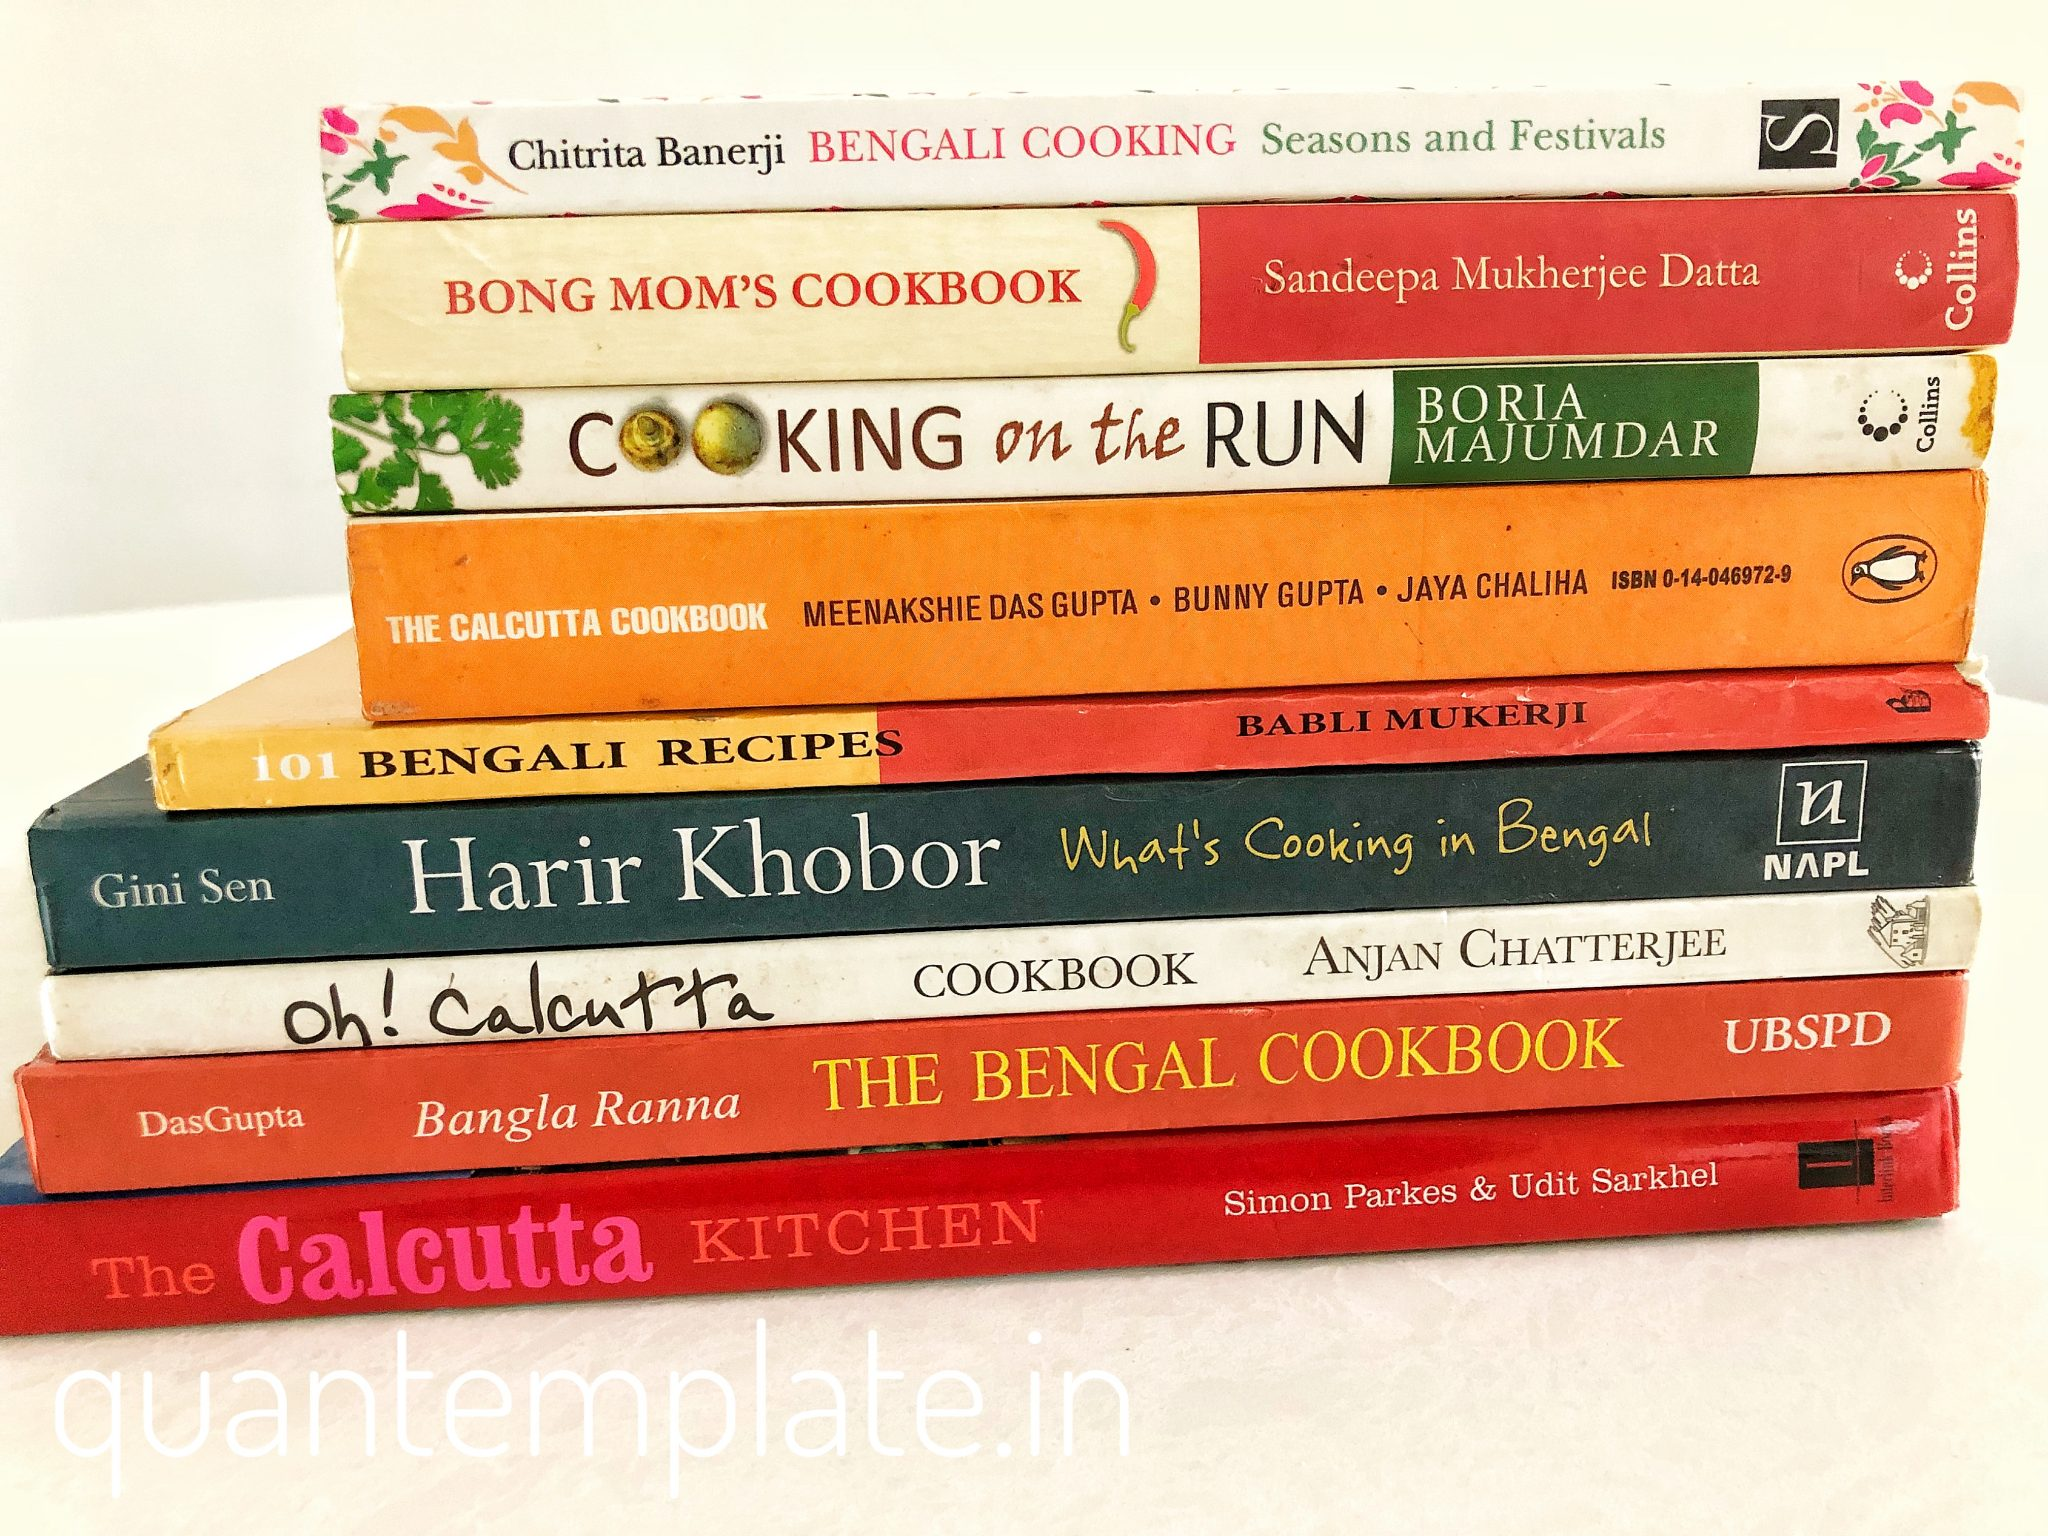 My Bengali cookbook collection - quantemplate in